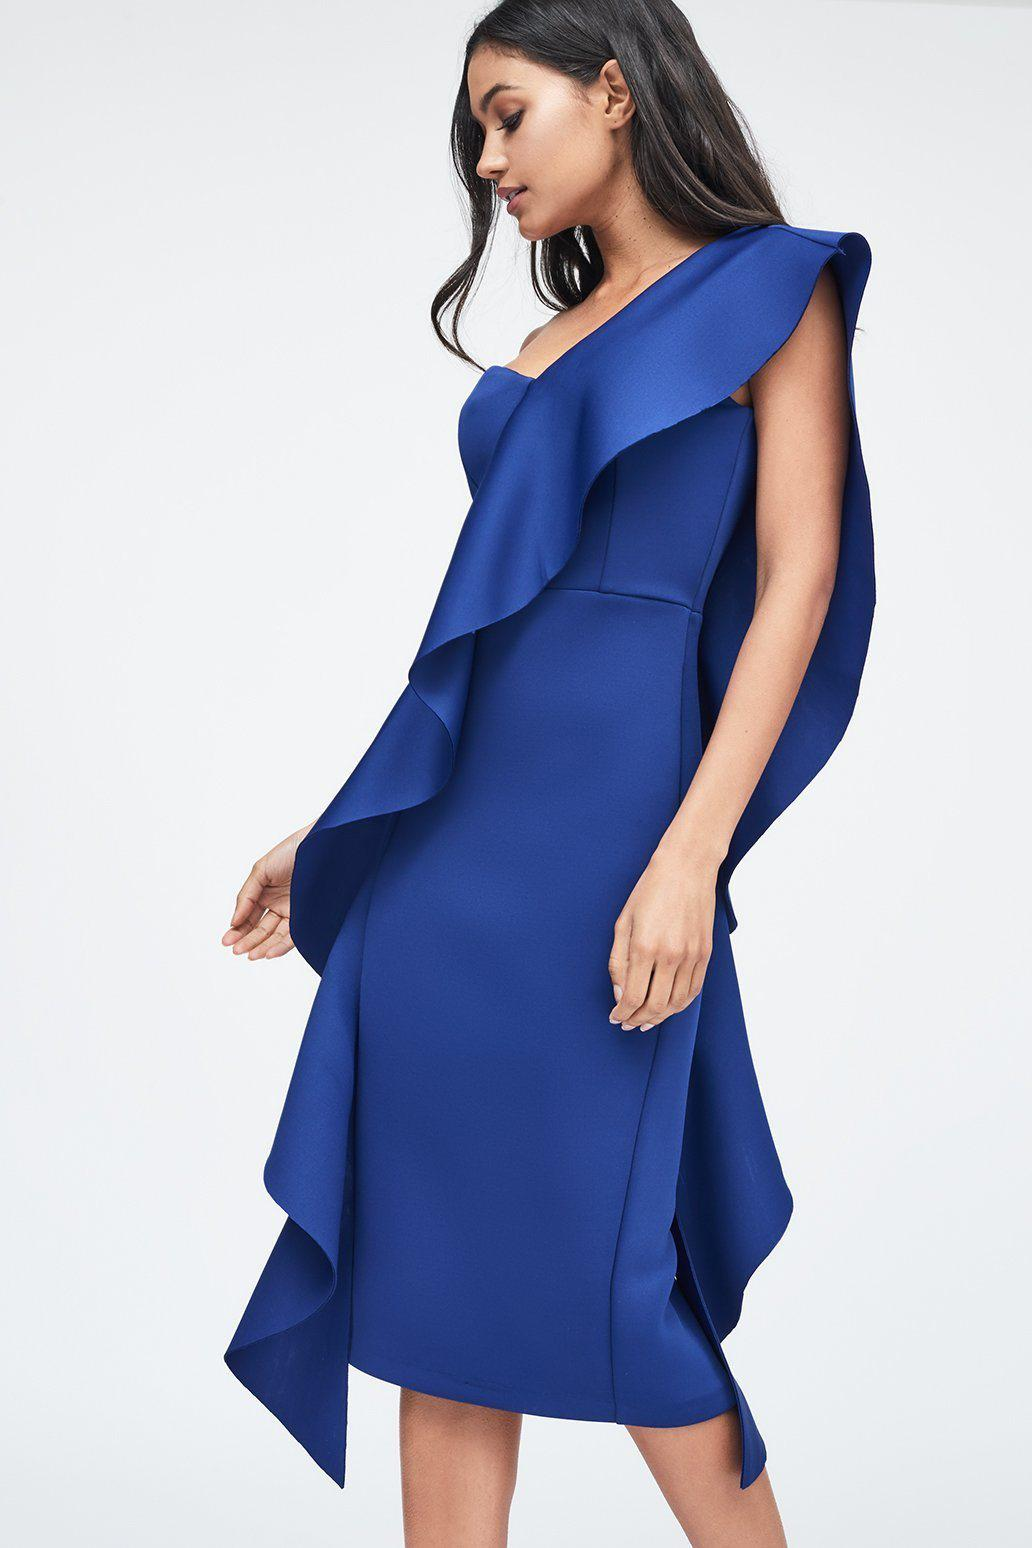 aaca1e047f5 Lavish Alice - Exaggerated Frill One Shoulder Scuba Midi Dress In Blue -  Lyst. View fullscreen